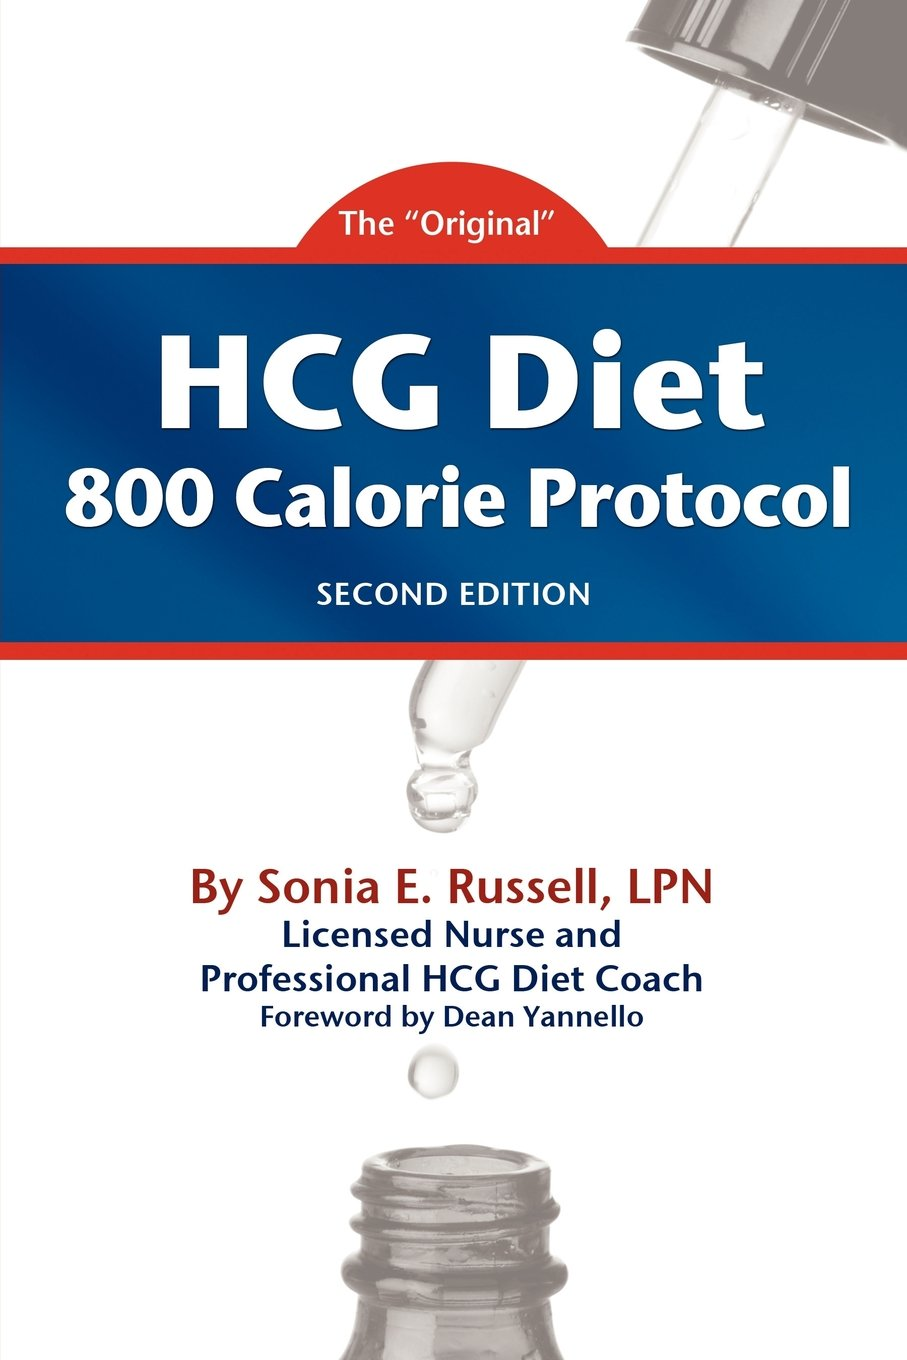 Hcg diet 800 calorie protocol second edition sonia e russell hcg diet 800 calorie protocol second edition sonia e russell 9781456610234 amazon books nvjuhfo Image collections